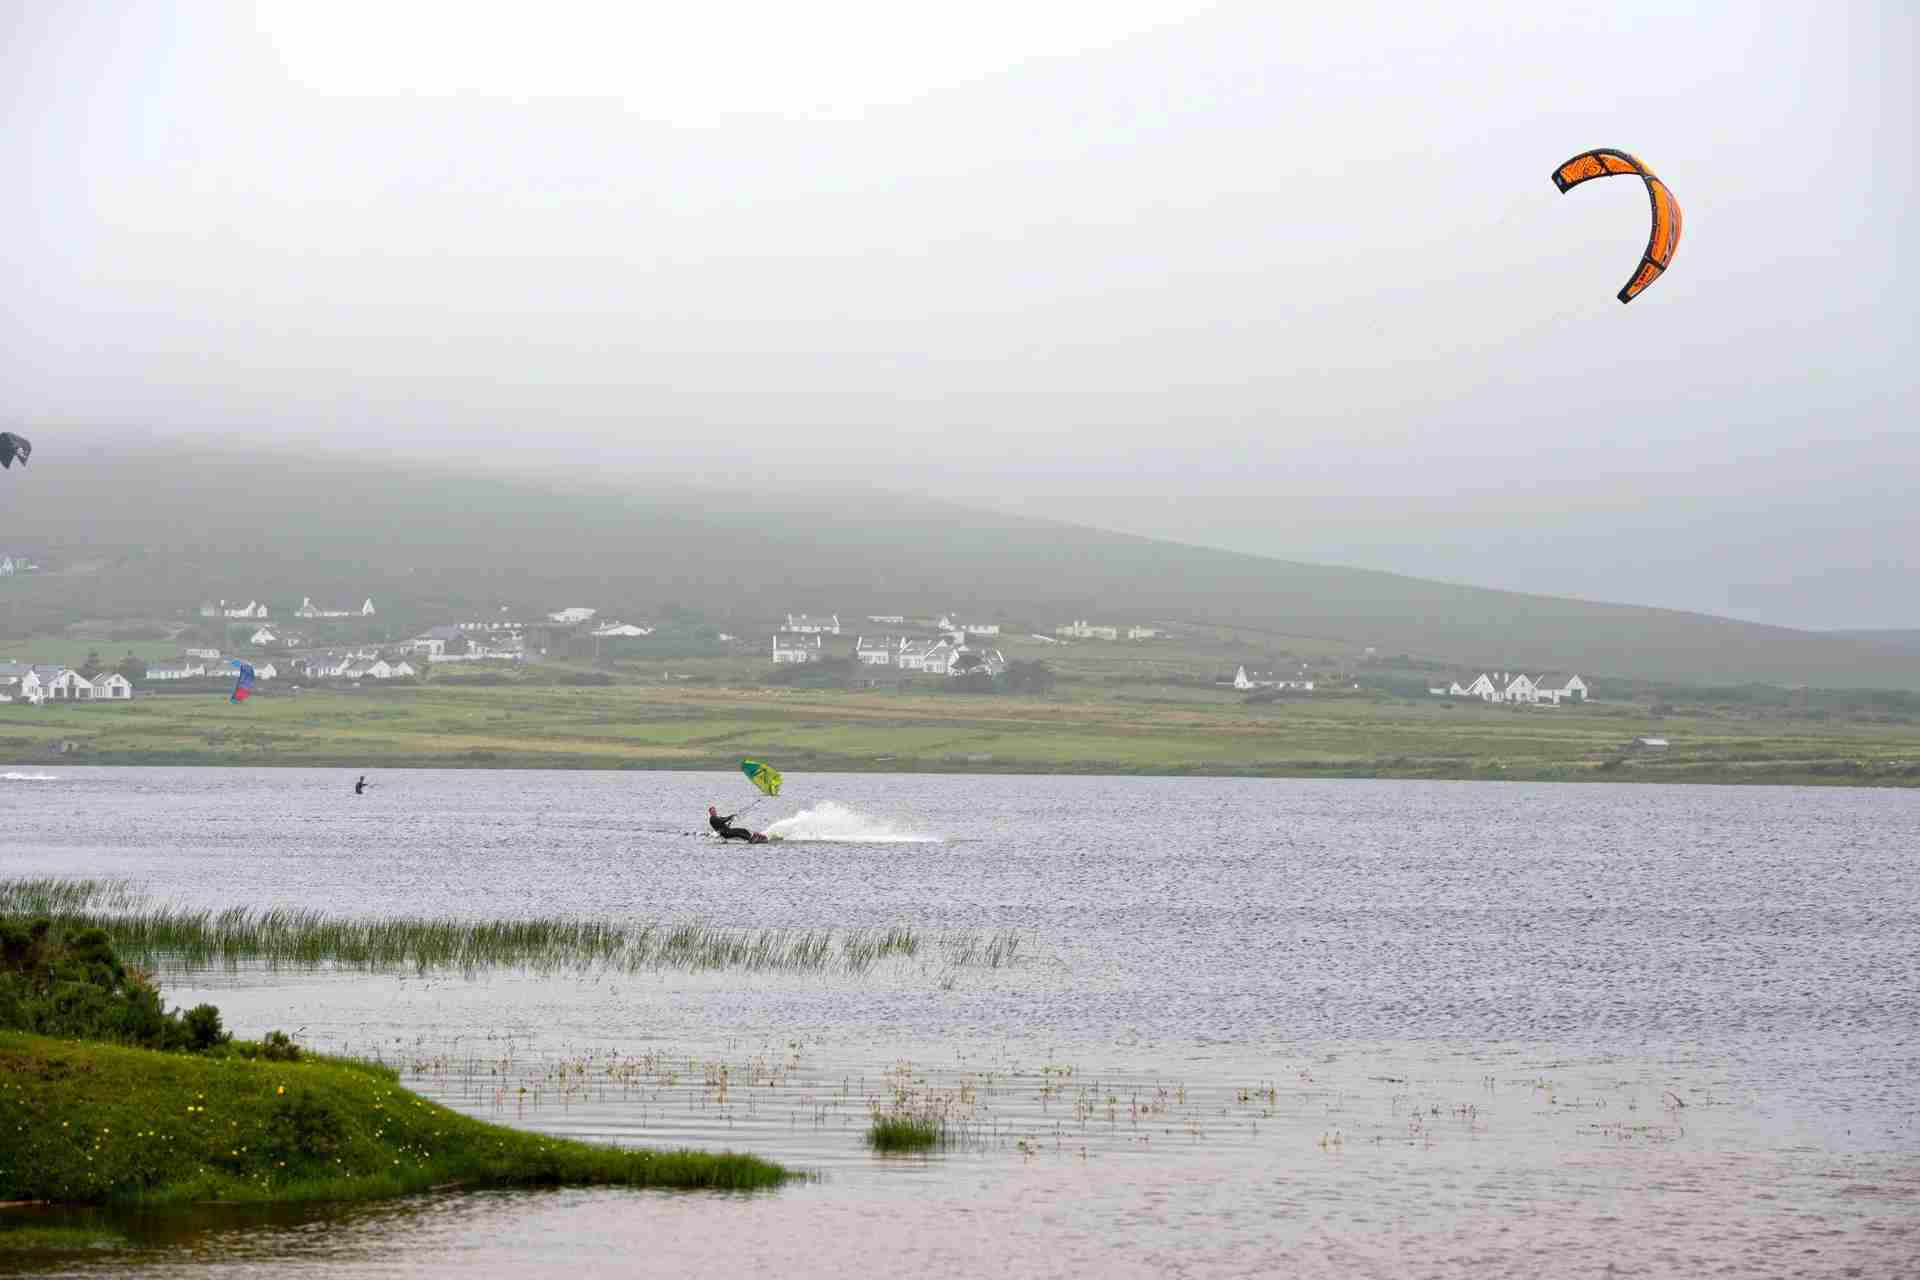 Kitesurfing at Keel Lough of Achill Island. (Photo by Feifei Cui Paoluzzo/Getty Images)